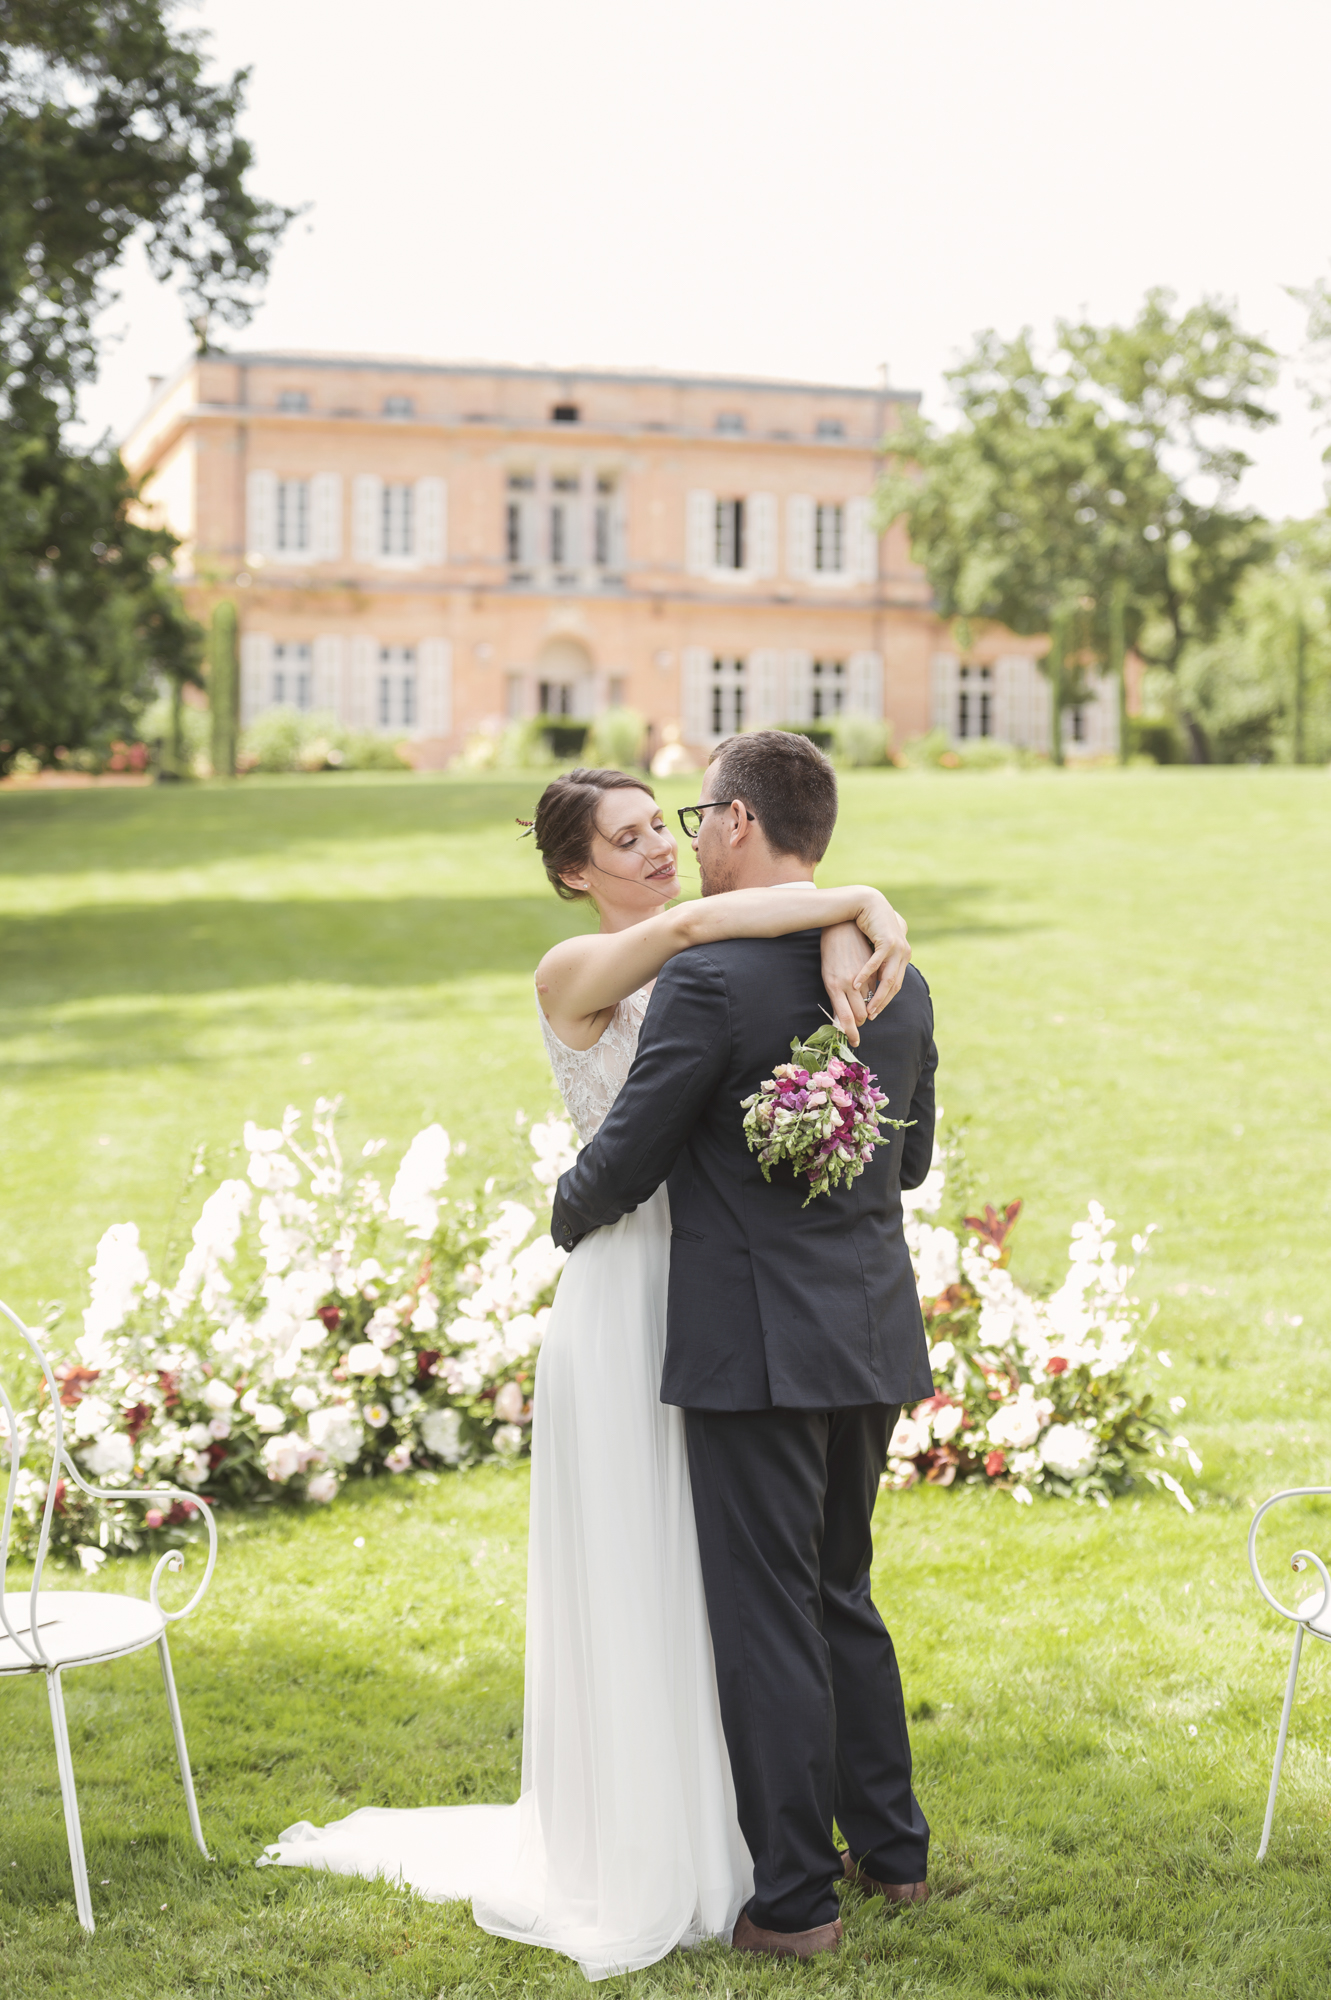 French wedding chateau - outdoor wedding ceremony